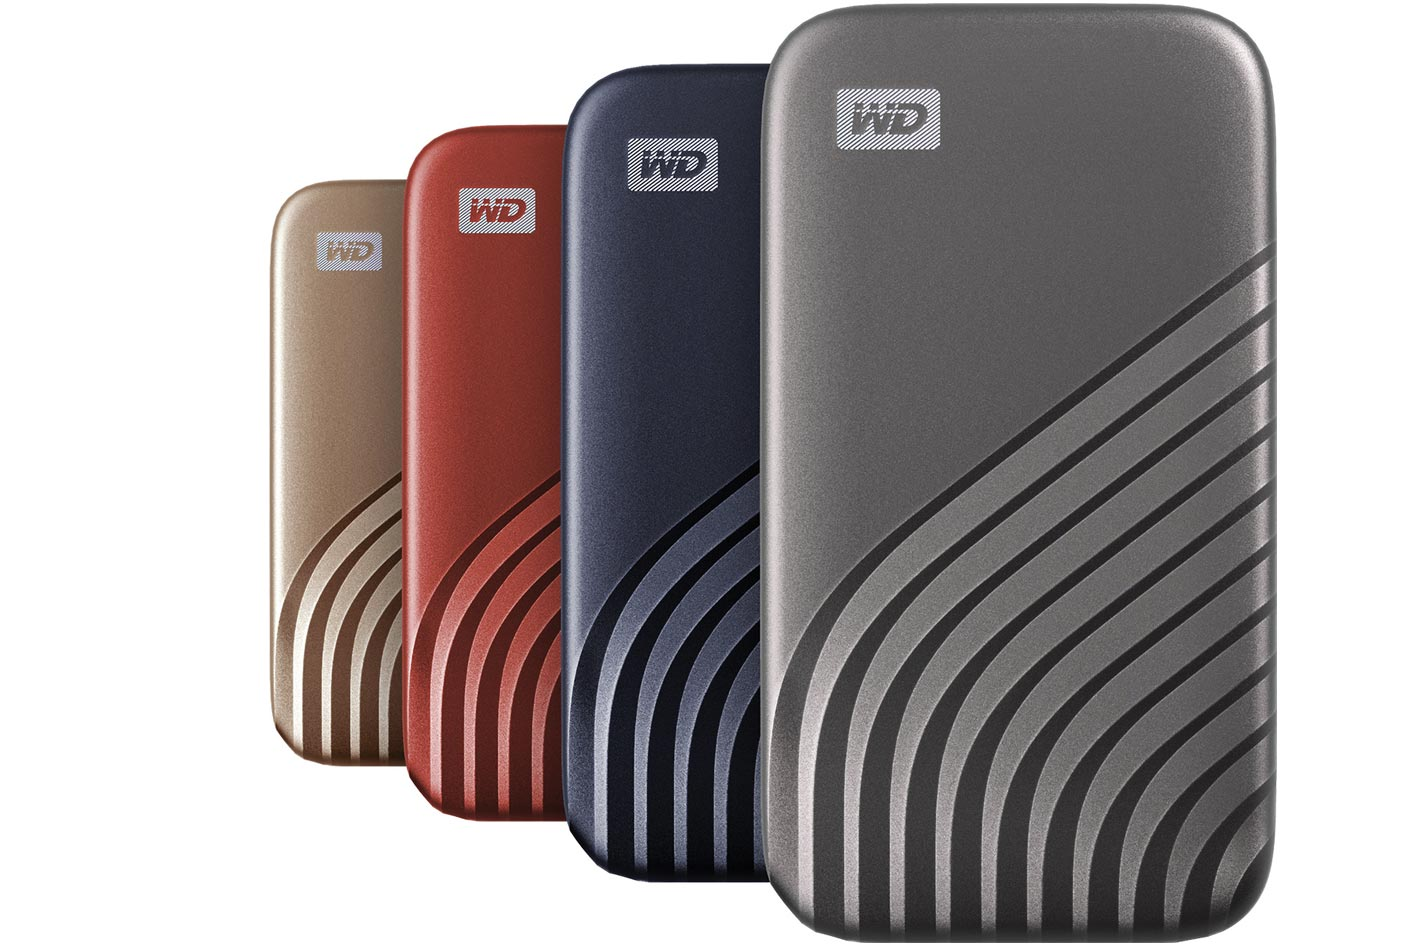 Western Digital My Passport SSD: built for speed and productivity